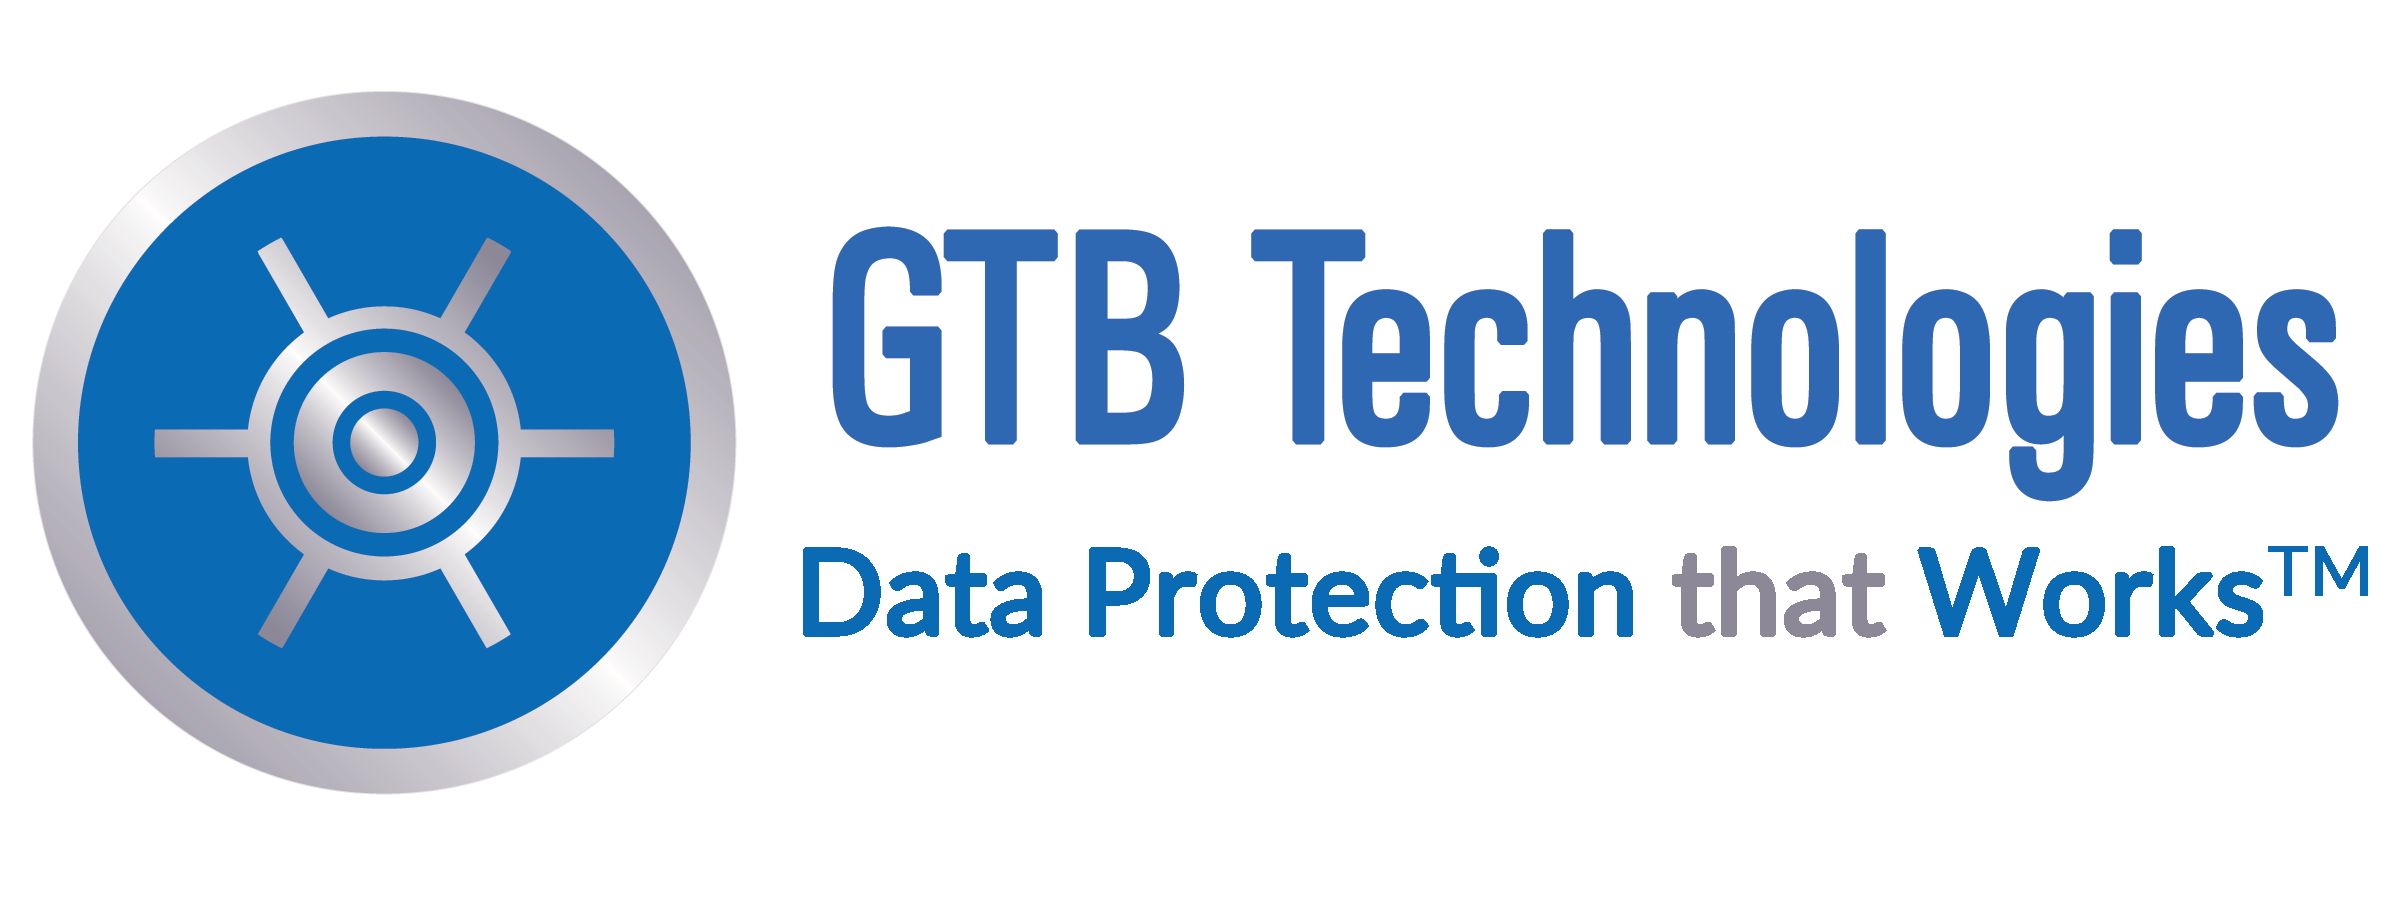 GTB Technologies Inspector Reviews and Pricing in 2019 ...